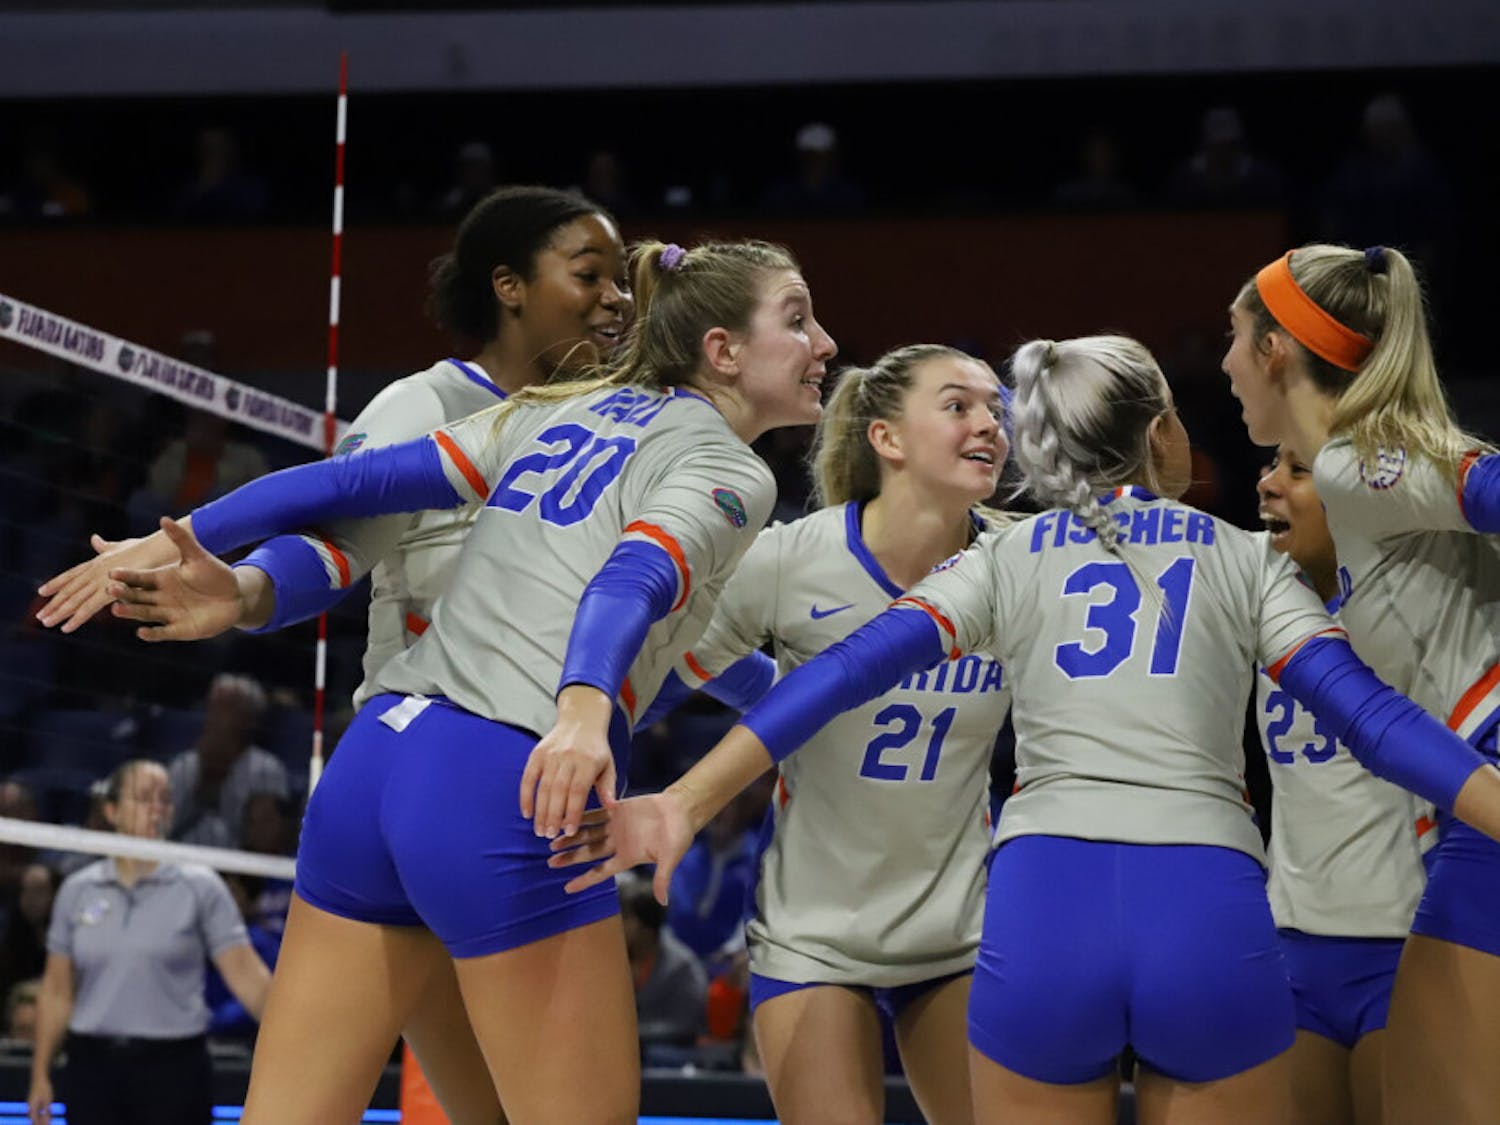 The Gators congregate in a huddle formation at their loss against LSU last season. UF can exact revenge against the Tigers this season on Feb 10-11 at the O'Dome